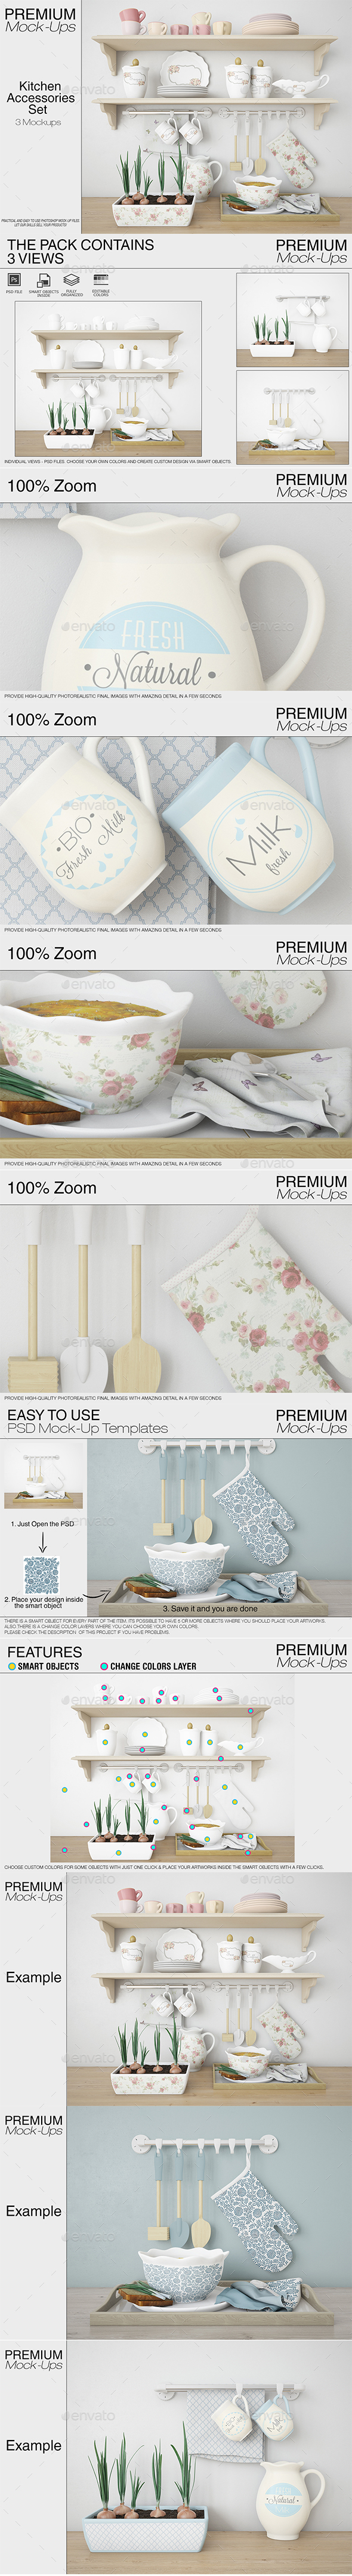 Kitchen Accessories Set - Print Product Mock-Ups